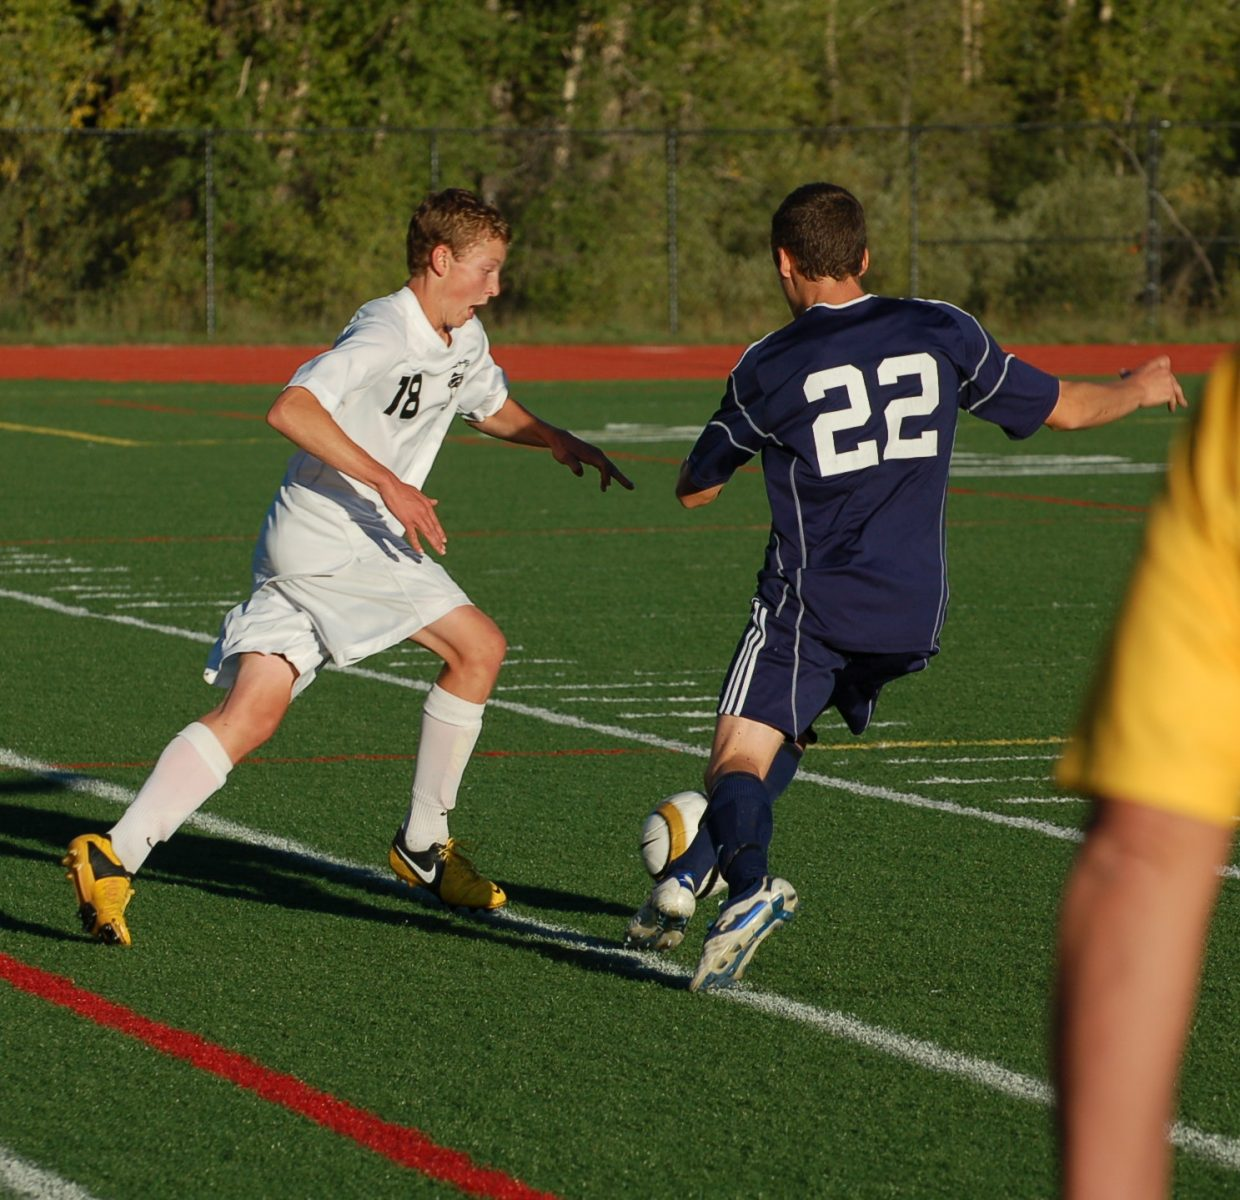 Charlie Buerskens goes for the ball for the Sailors.